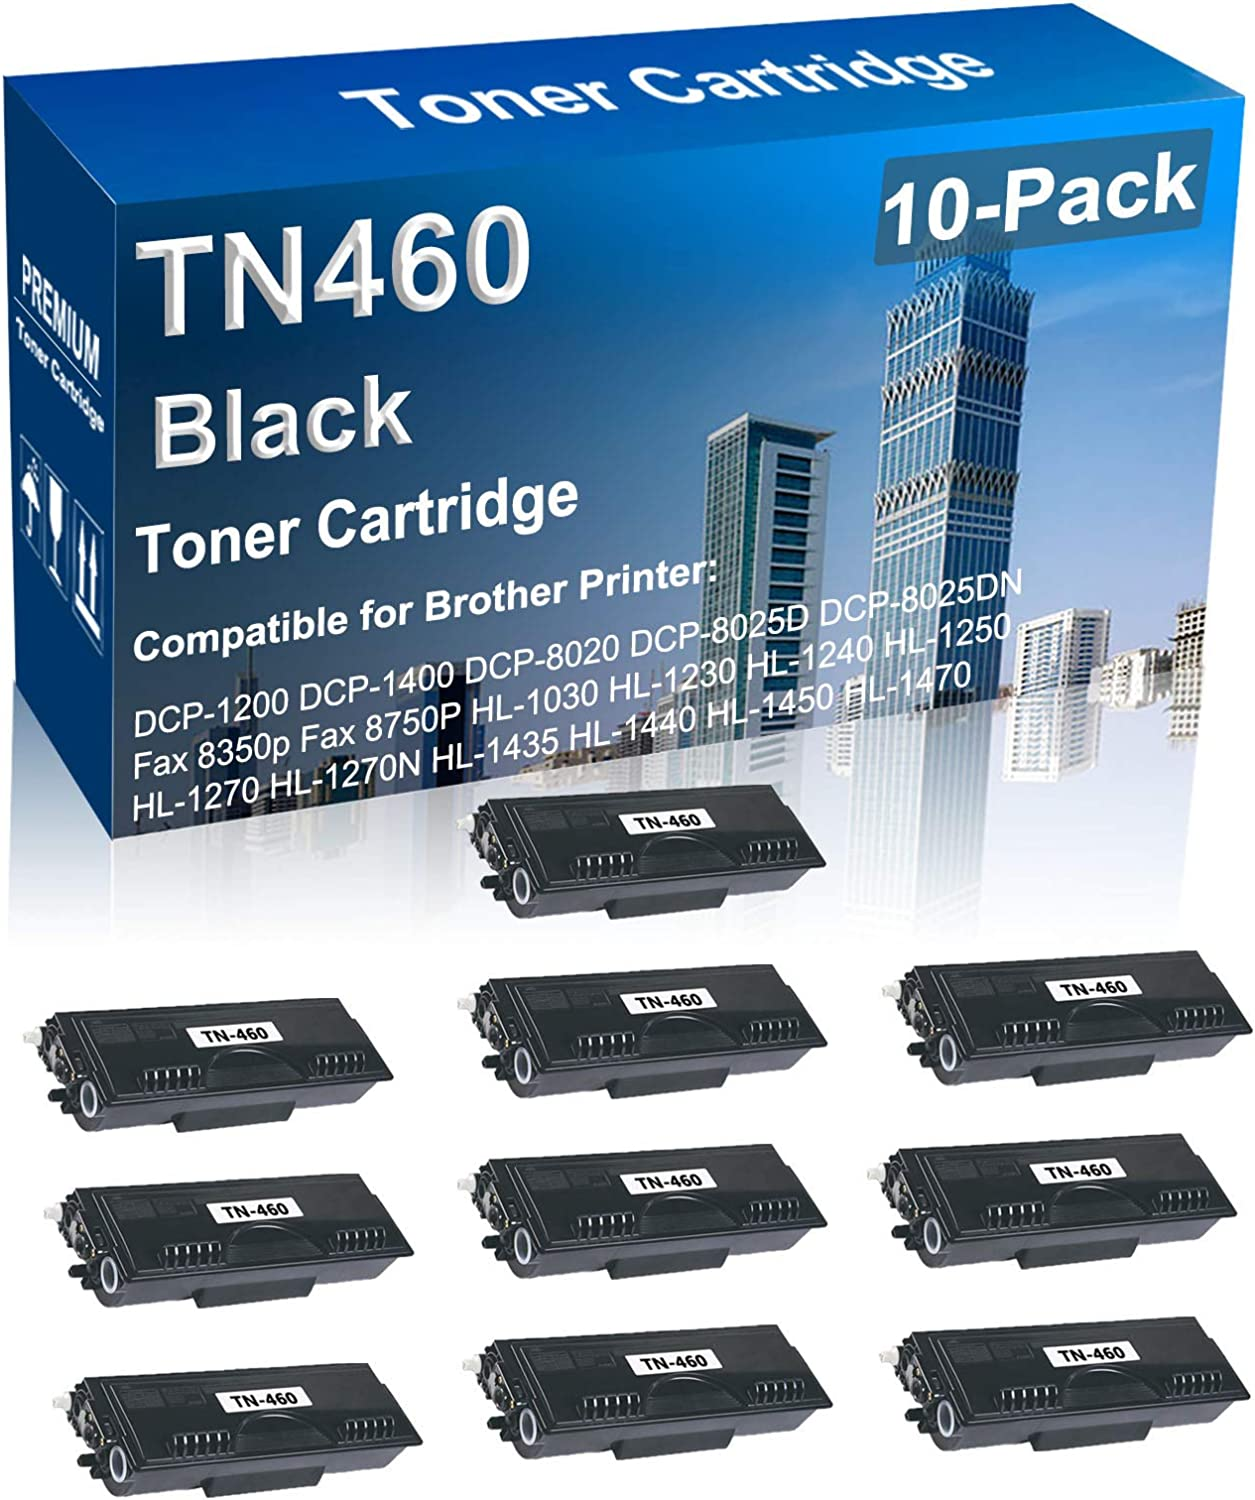 outlet 10-Pack Compatible High Today's only Yield TN460 Printer Laser Toner TN-460 C